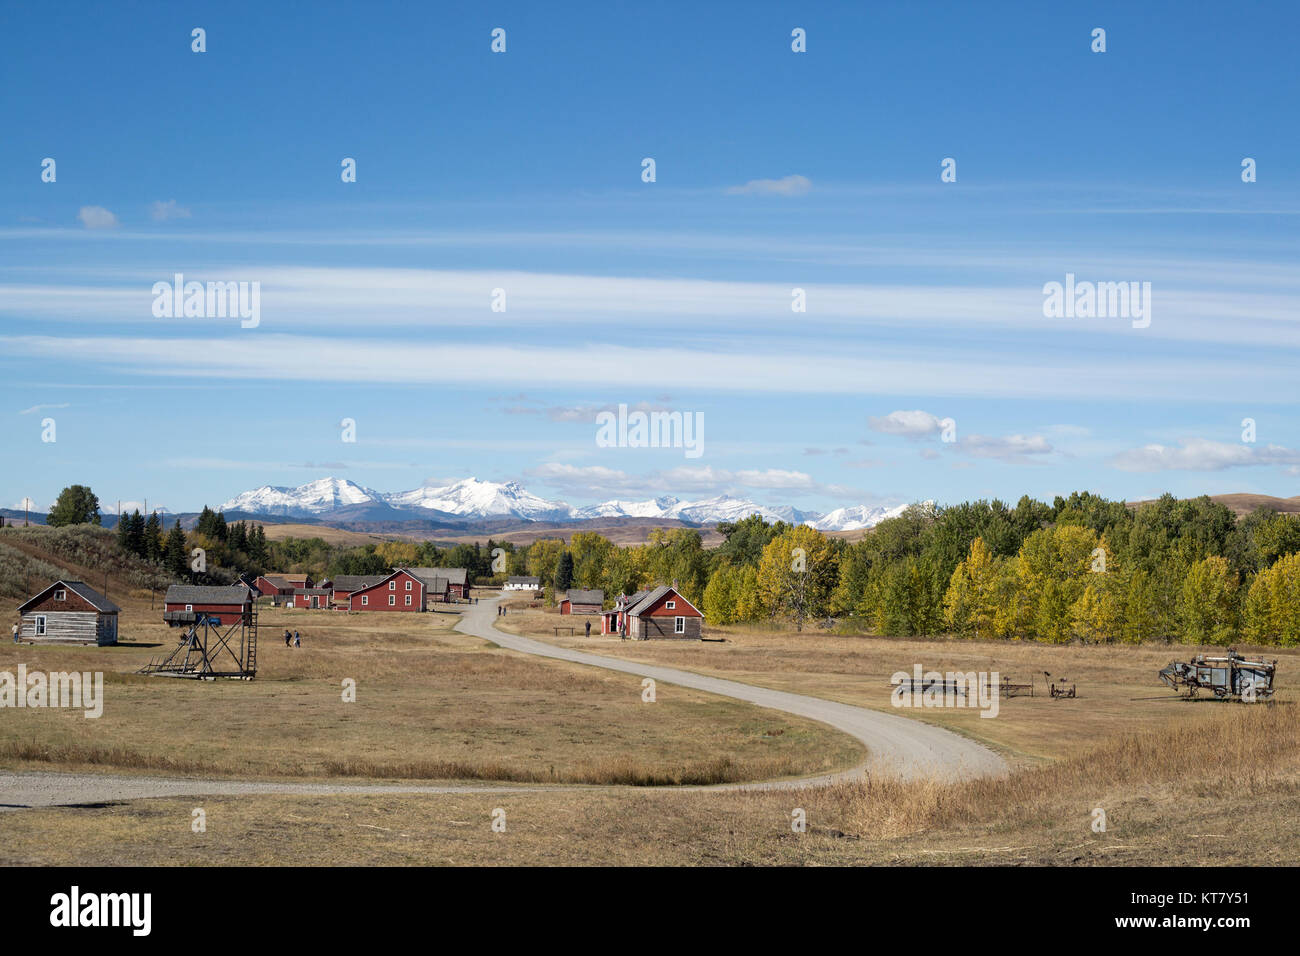 Bar U Ranch National Historic Site, a former working ranch in the Rocky Mountain foothills - Stock Image